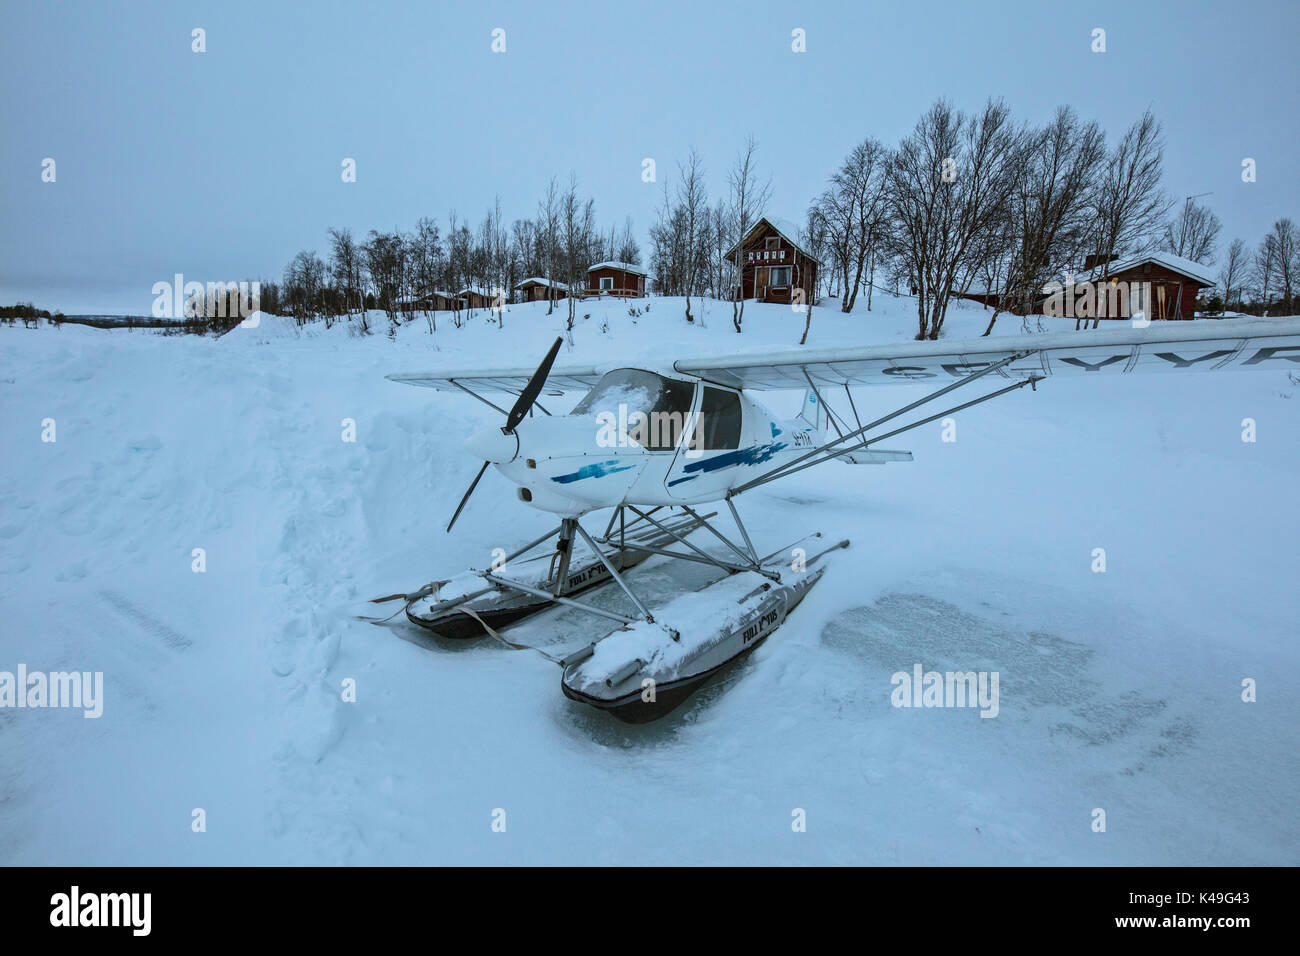 Hydroplane on the icy ground frames the wooden huts covered with snow Ruka Kuusamo Ostrobothnia region Lapland Finland Europe - Stock Image